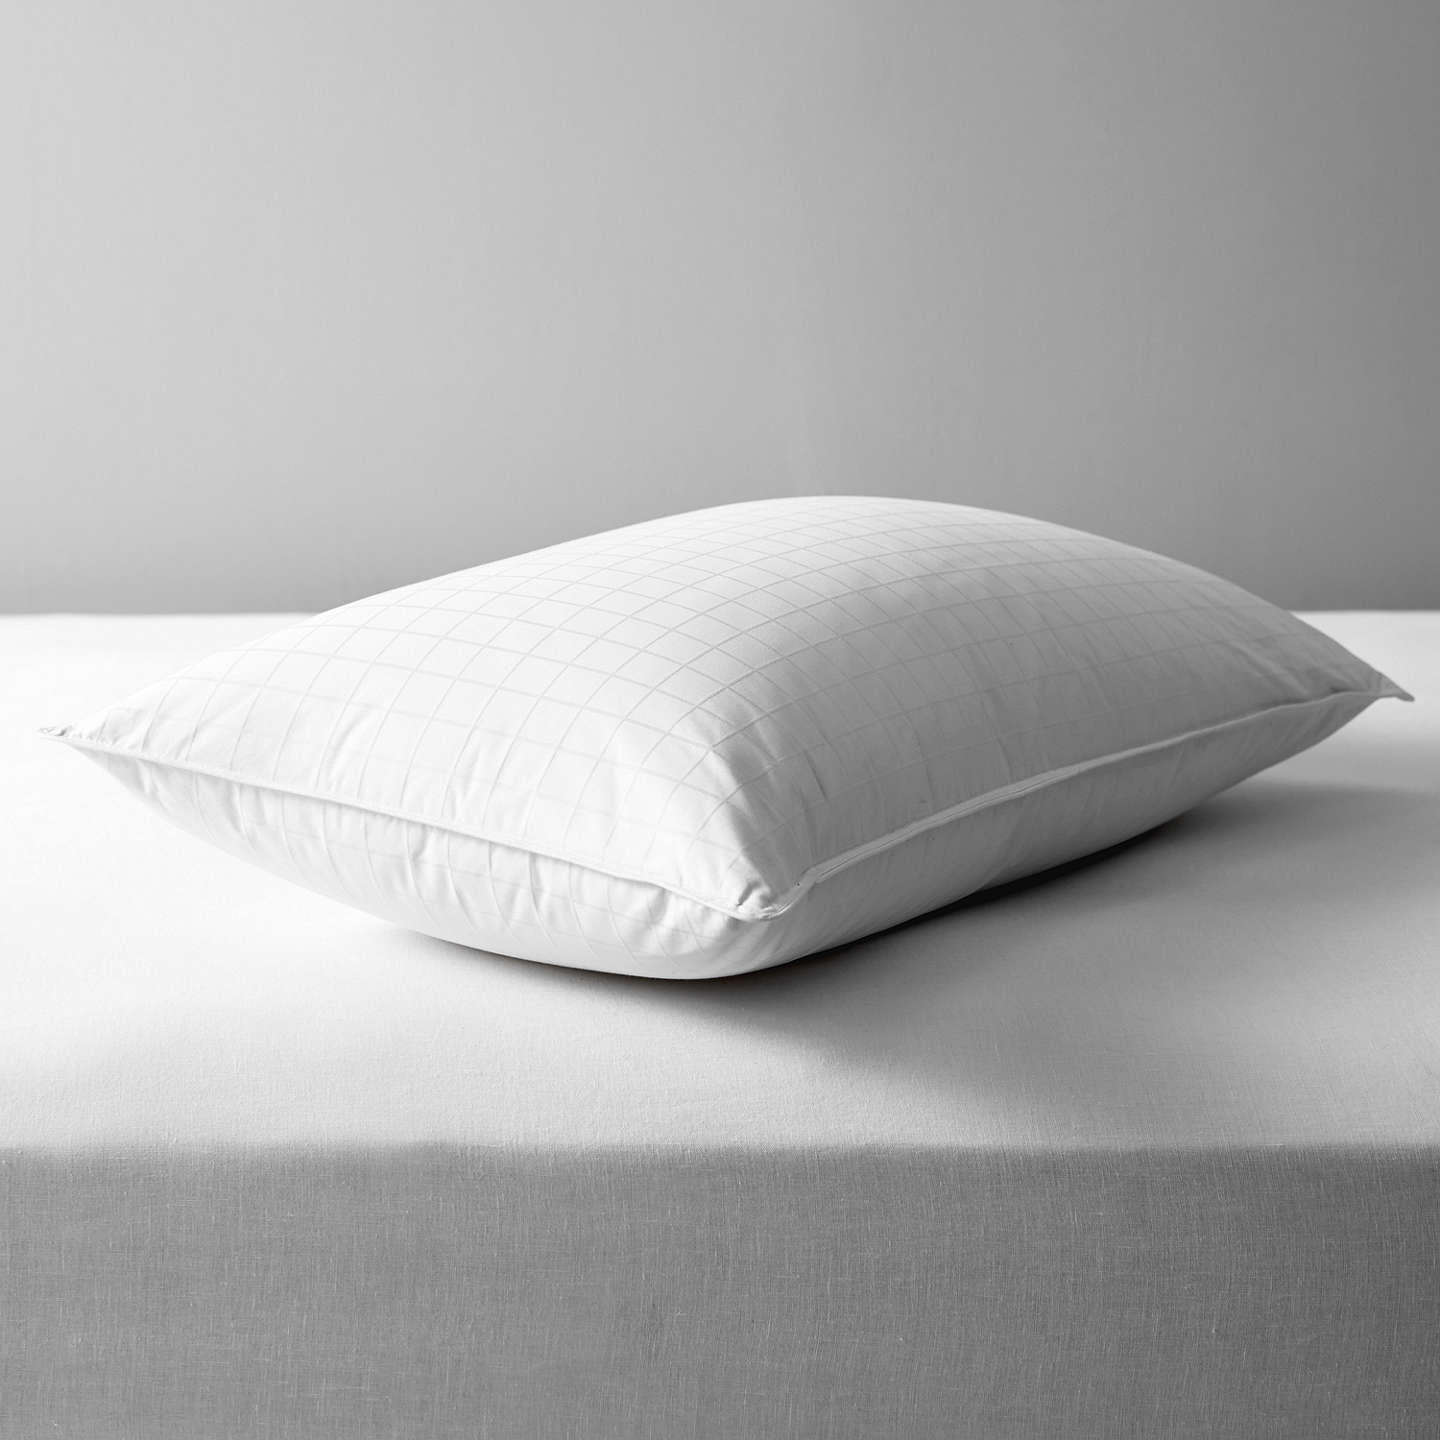 john lewis natural white goose down standard pillow soft